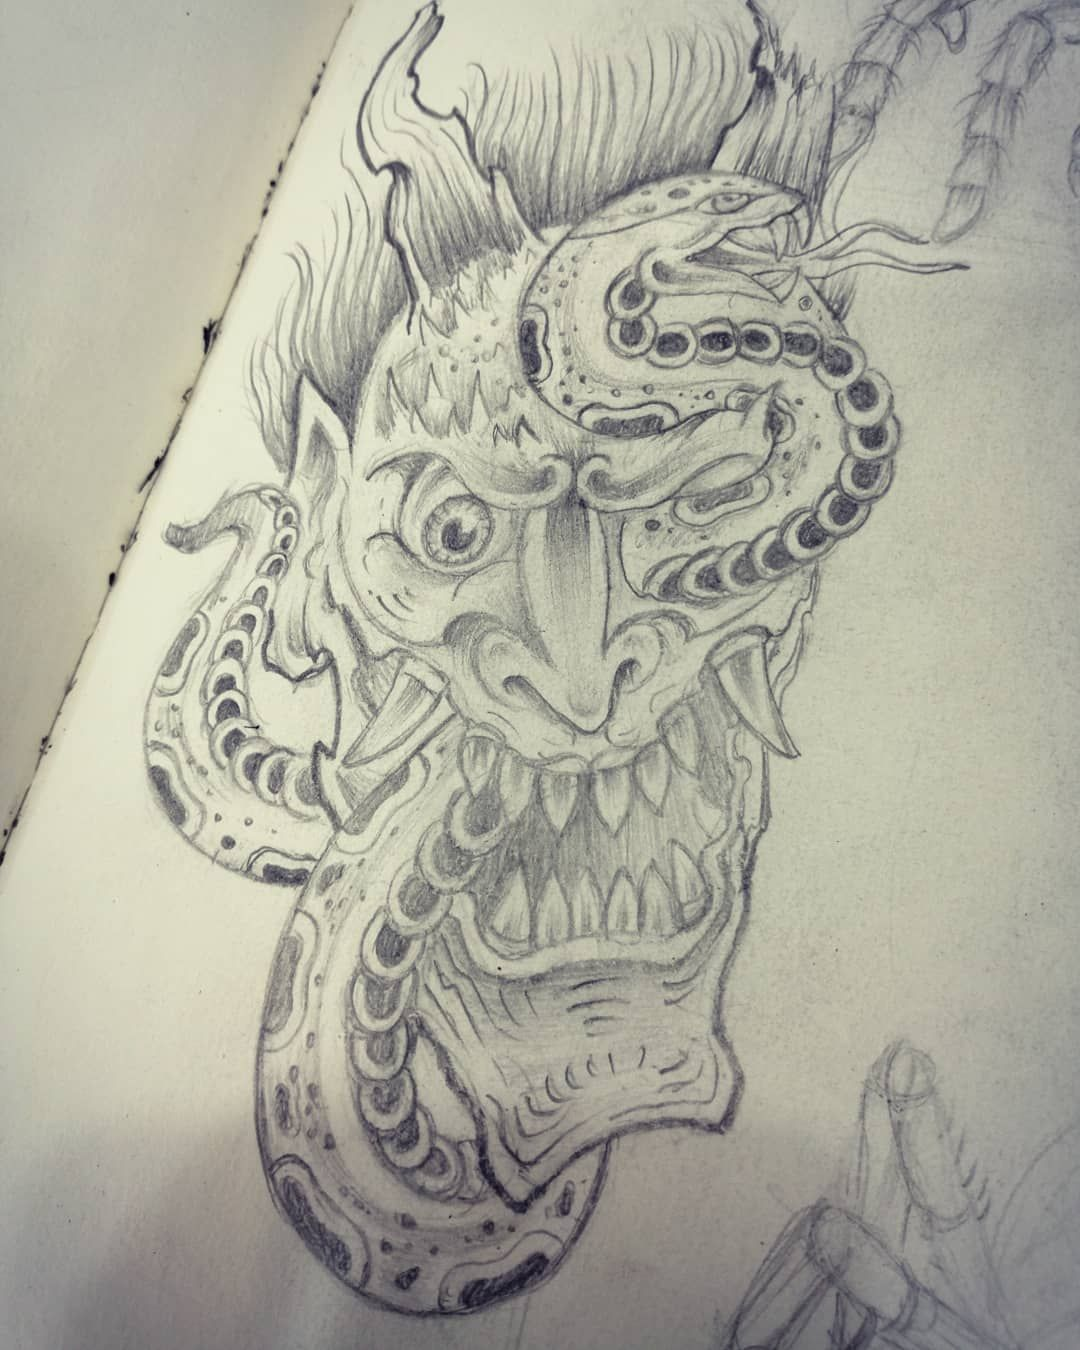 Sketches available for tattooing, just in @monstertattoocancun, For info @kenneth_lara_tattoo. #tattoos #ink #inkpeople #tattoartist #cancun #monstertattoocancun #kennethlara #kennyG #sketches #mexicanstyle